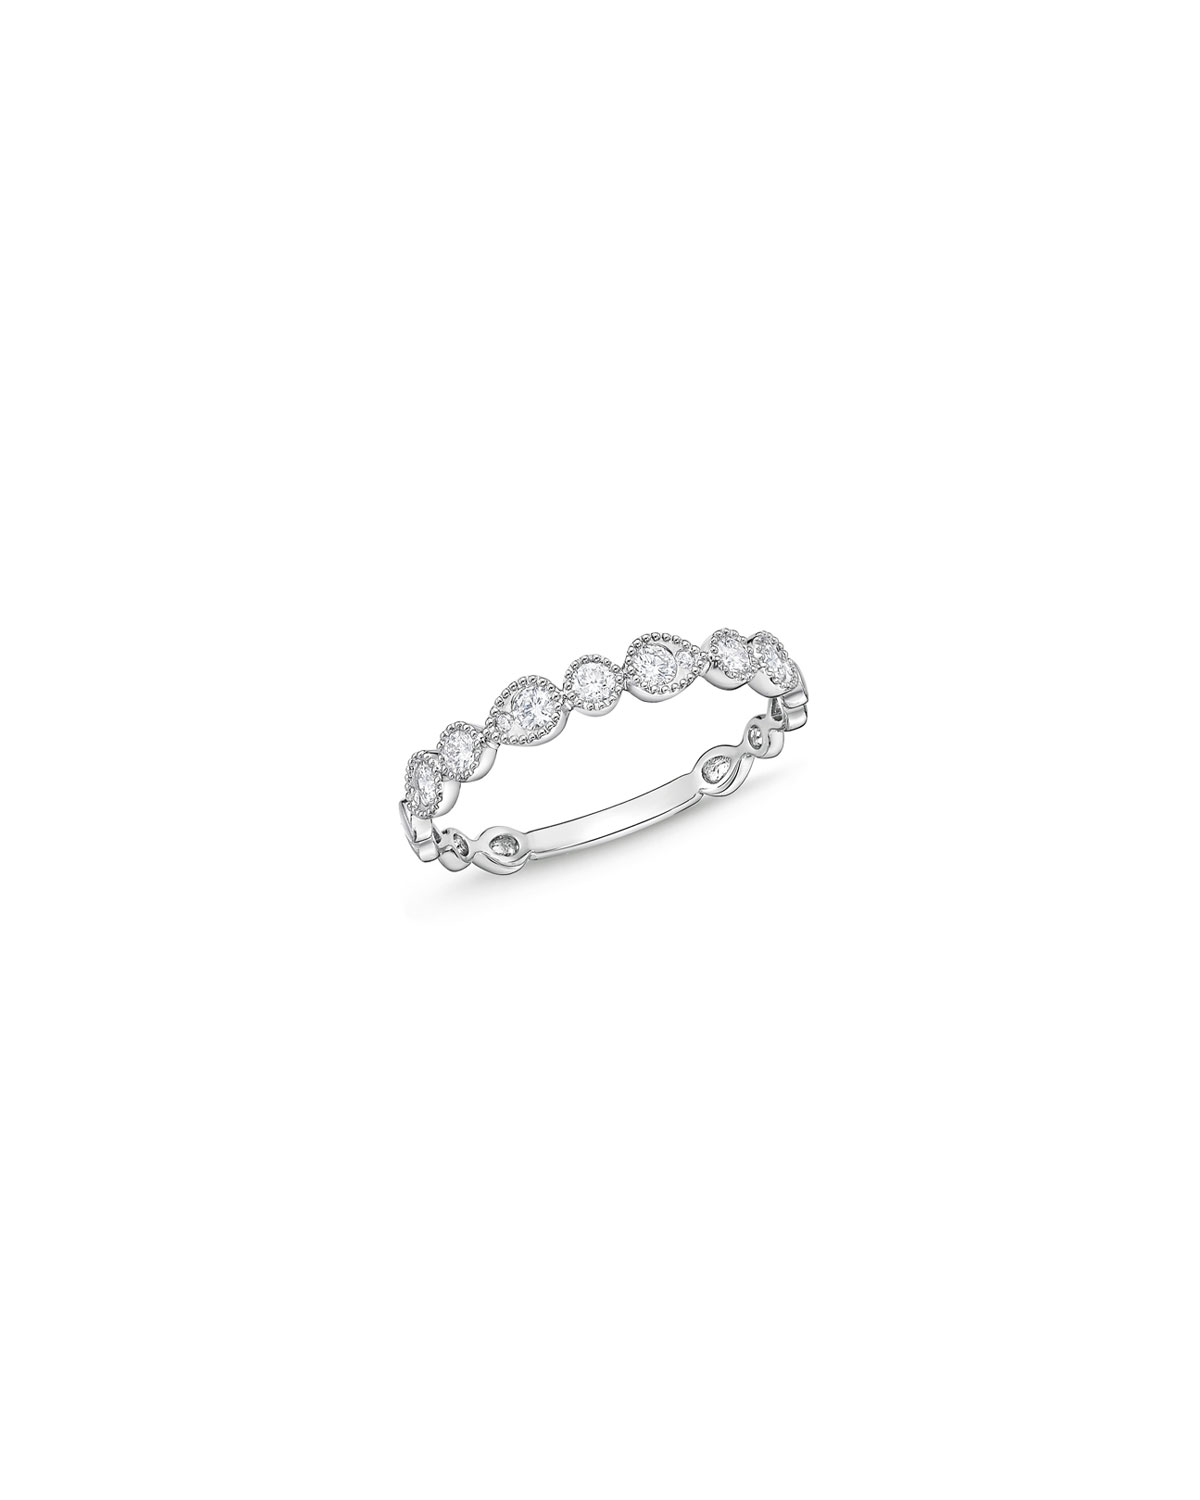 Memoire Stackables 18k White Gold Half-Round Diamond Ring, Size 6.5